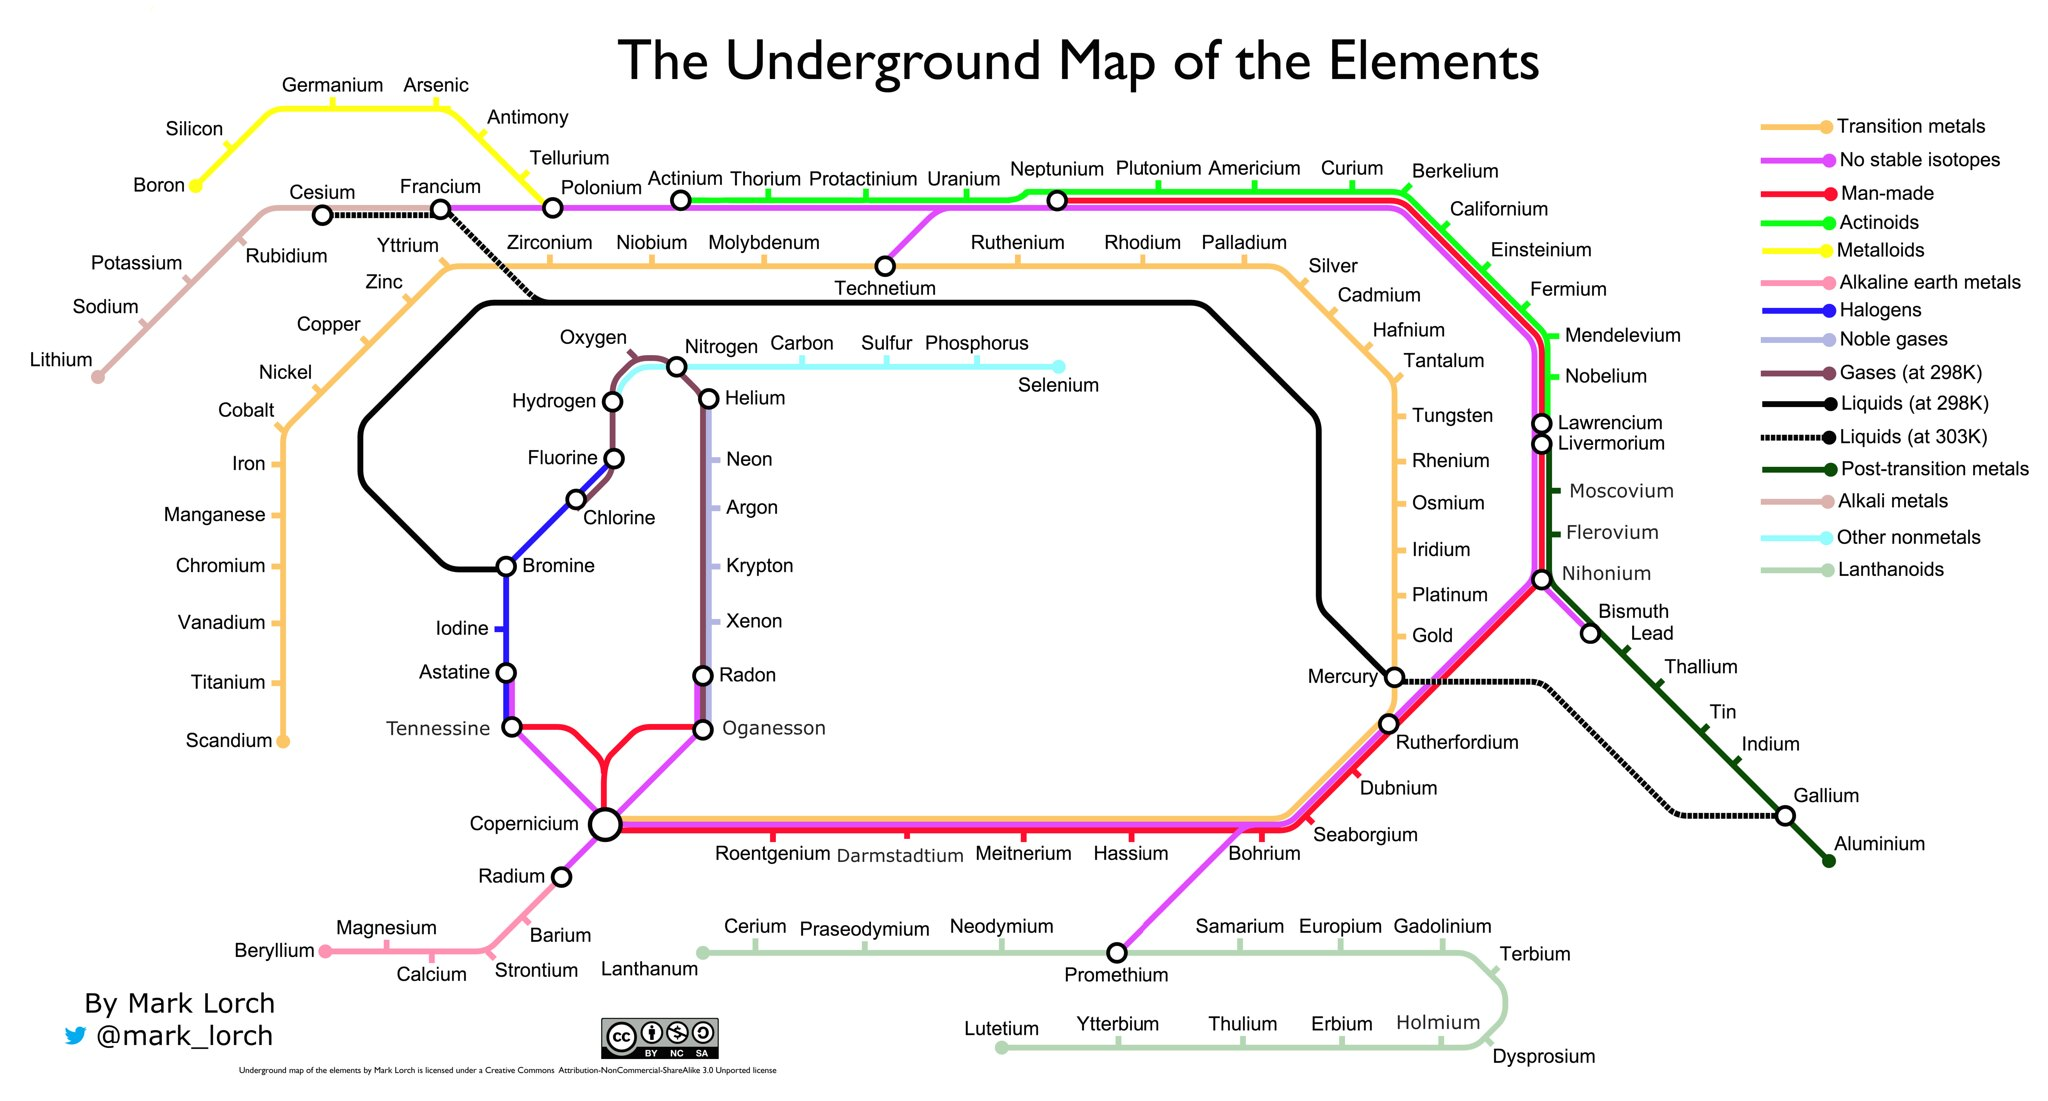 Underground map of the elements 2016